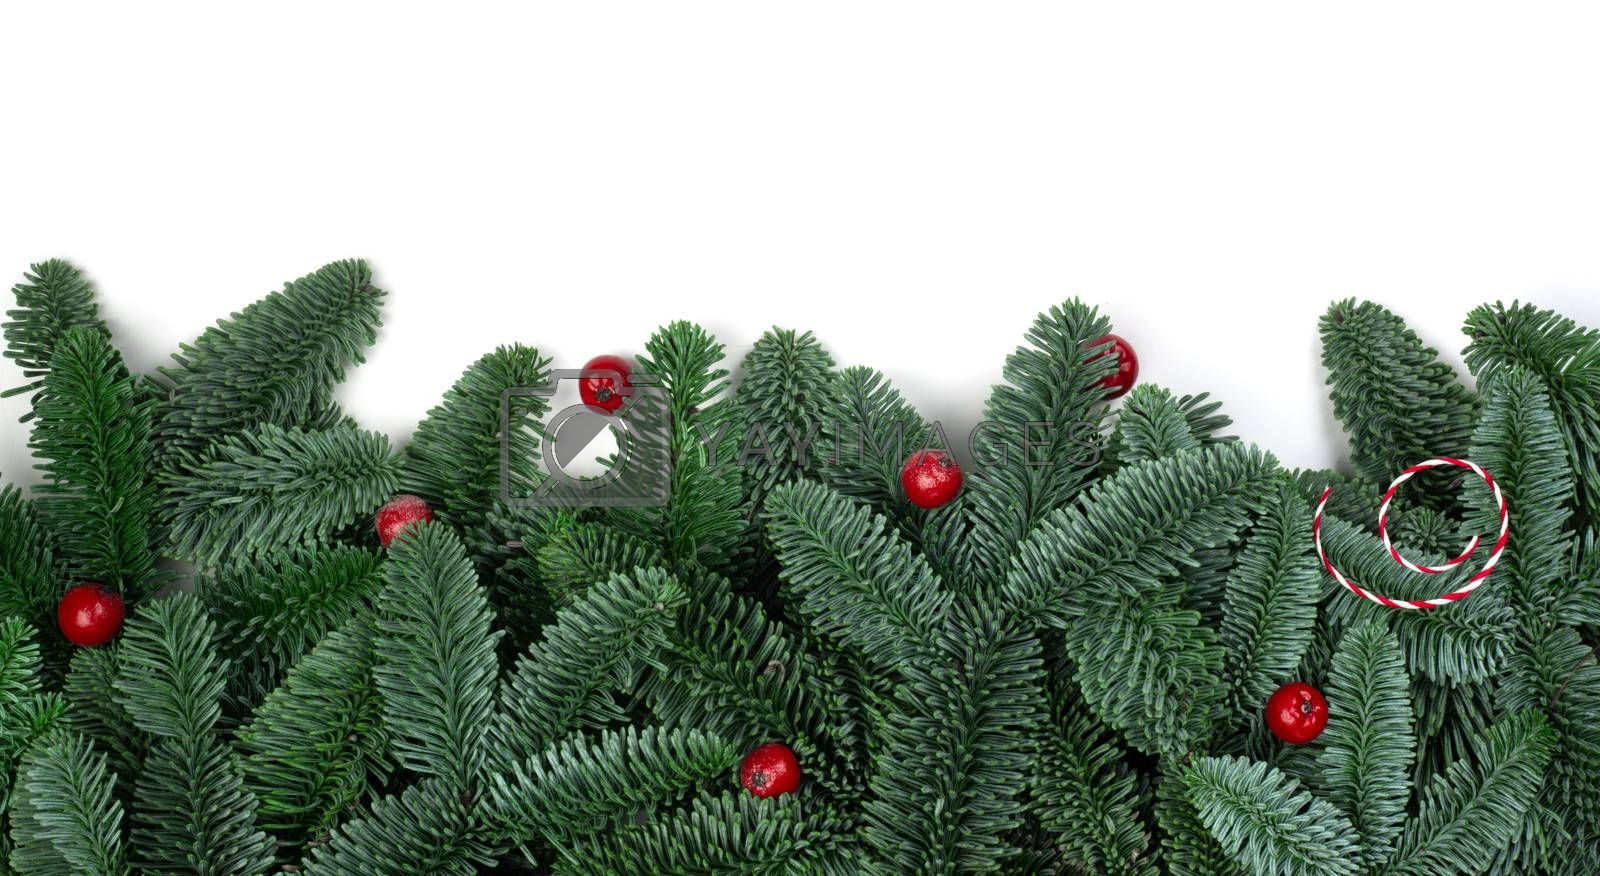 Traditional green christmas tree noble fir and red holly berries border frame isolated on white background copy space for text